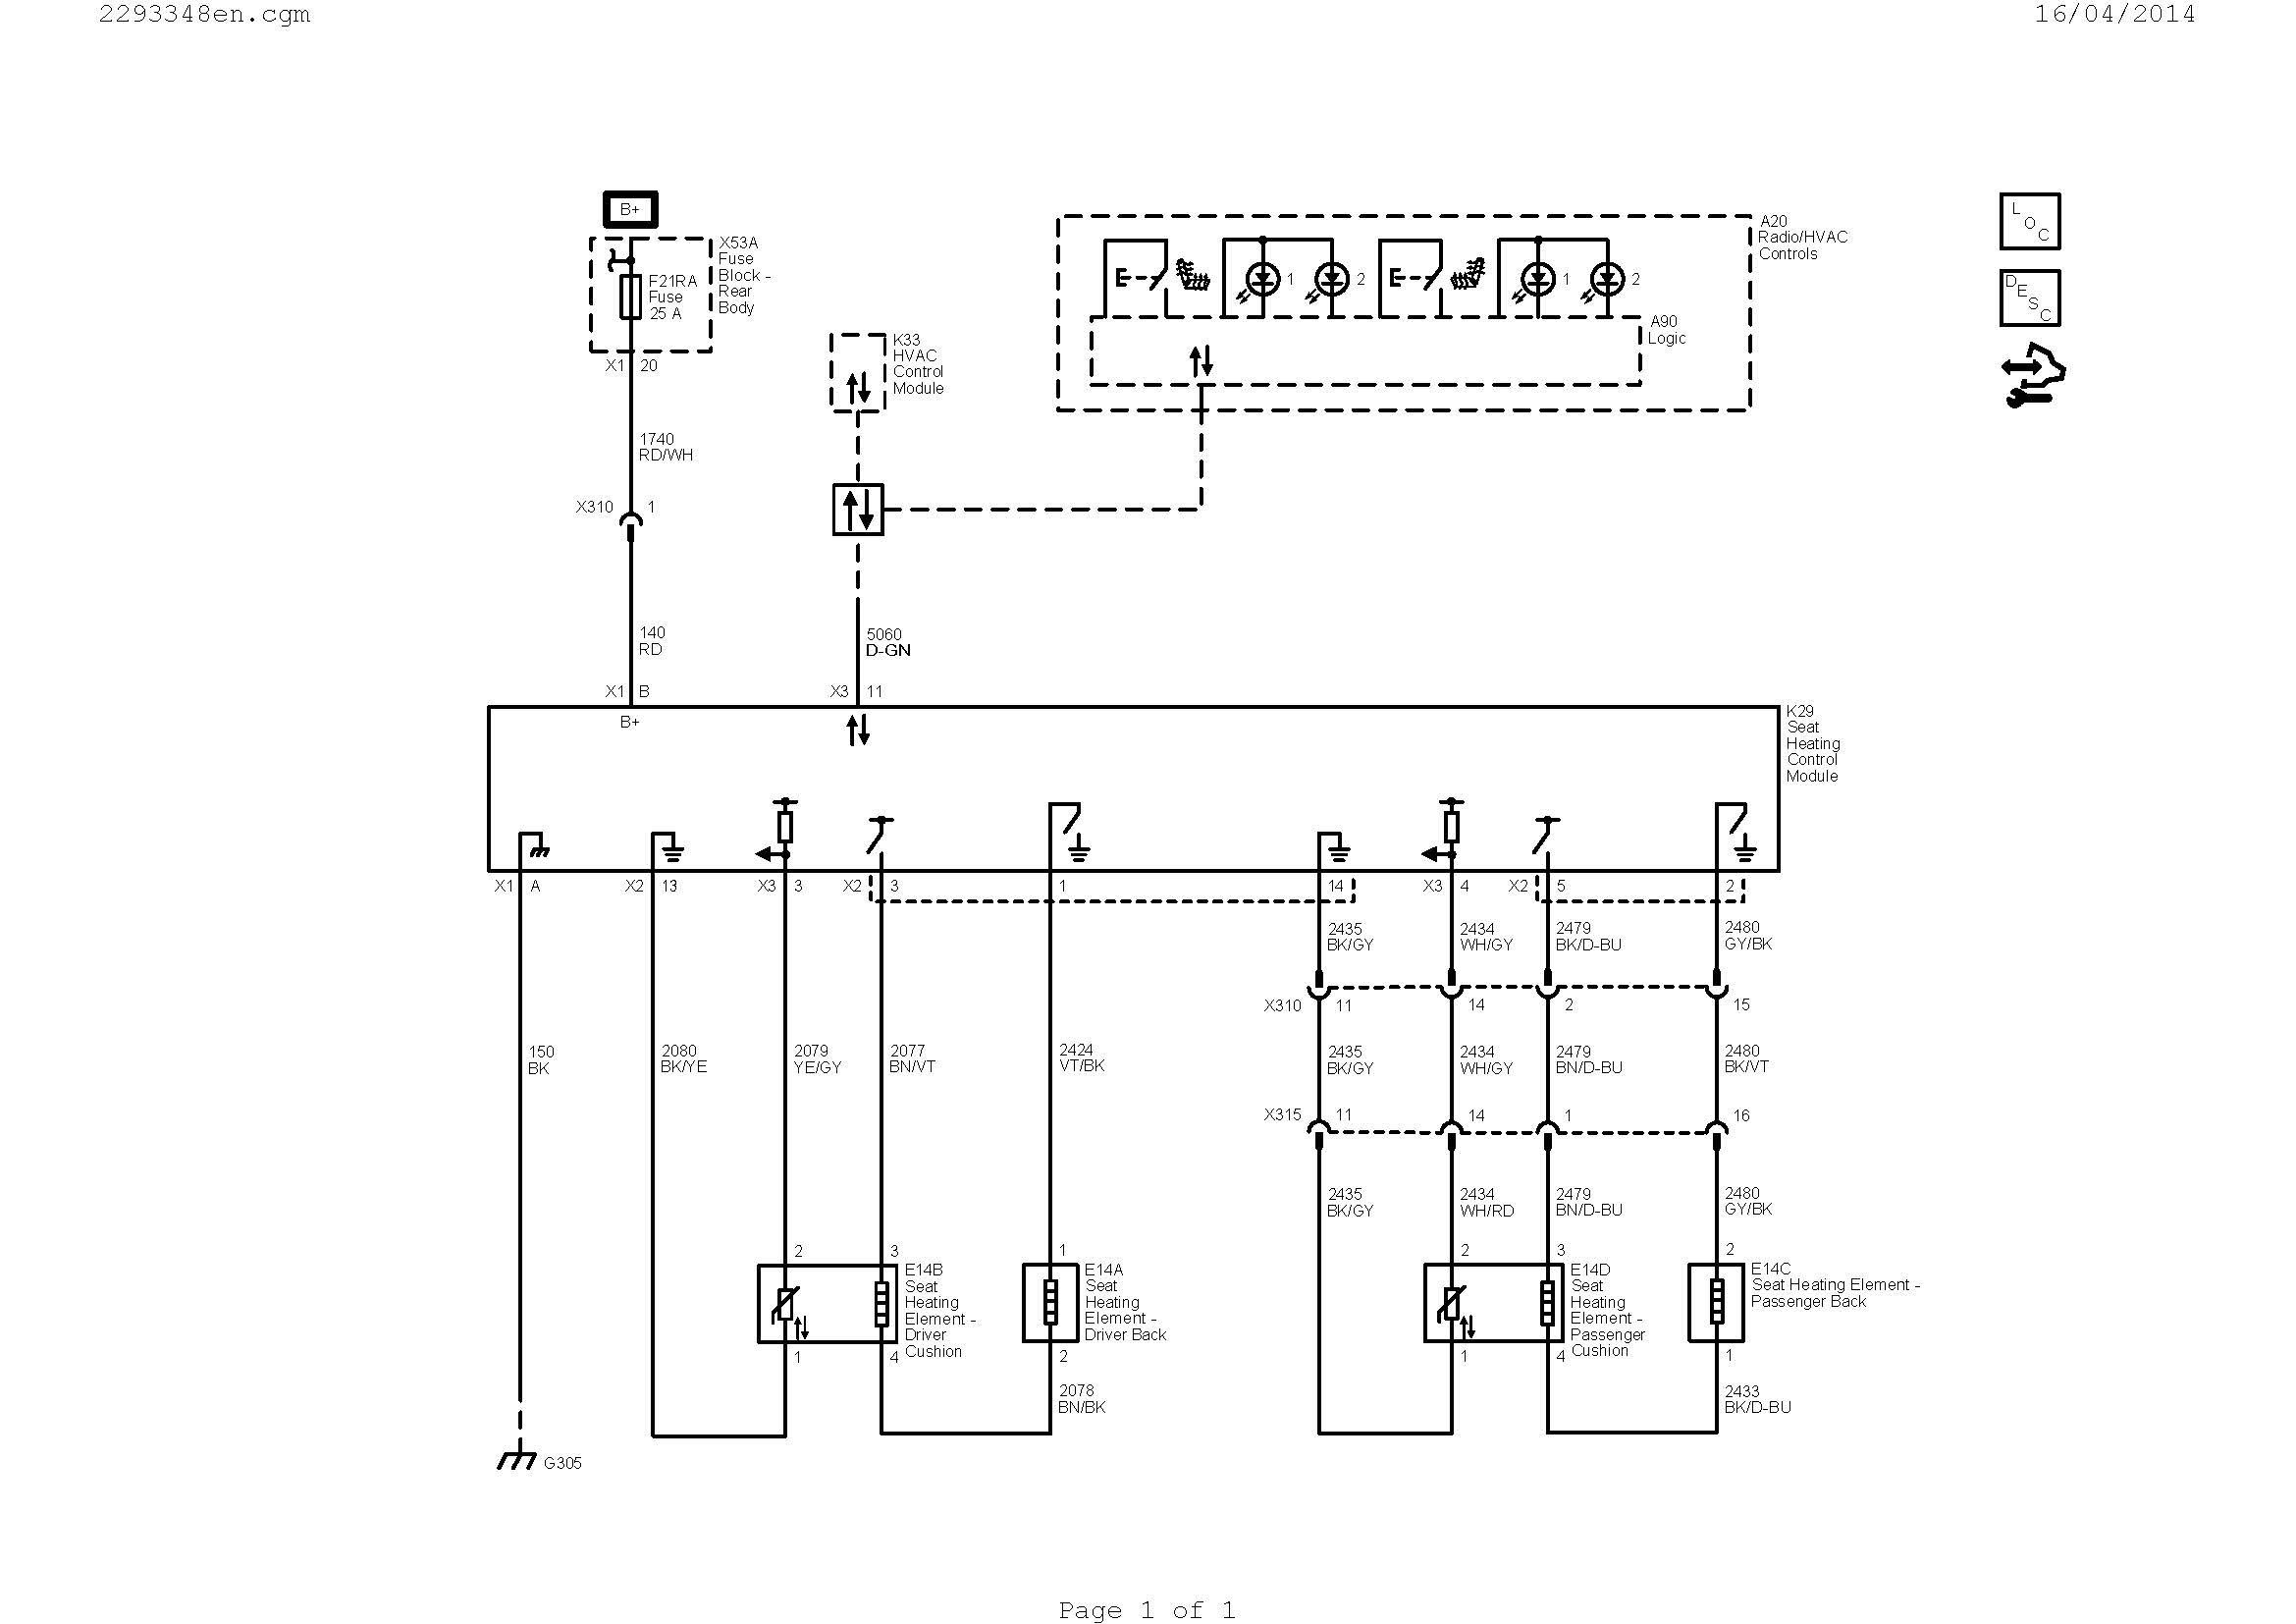 Dometic Digital Thermostat Wiring Diagram Gallery